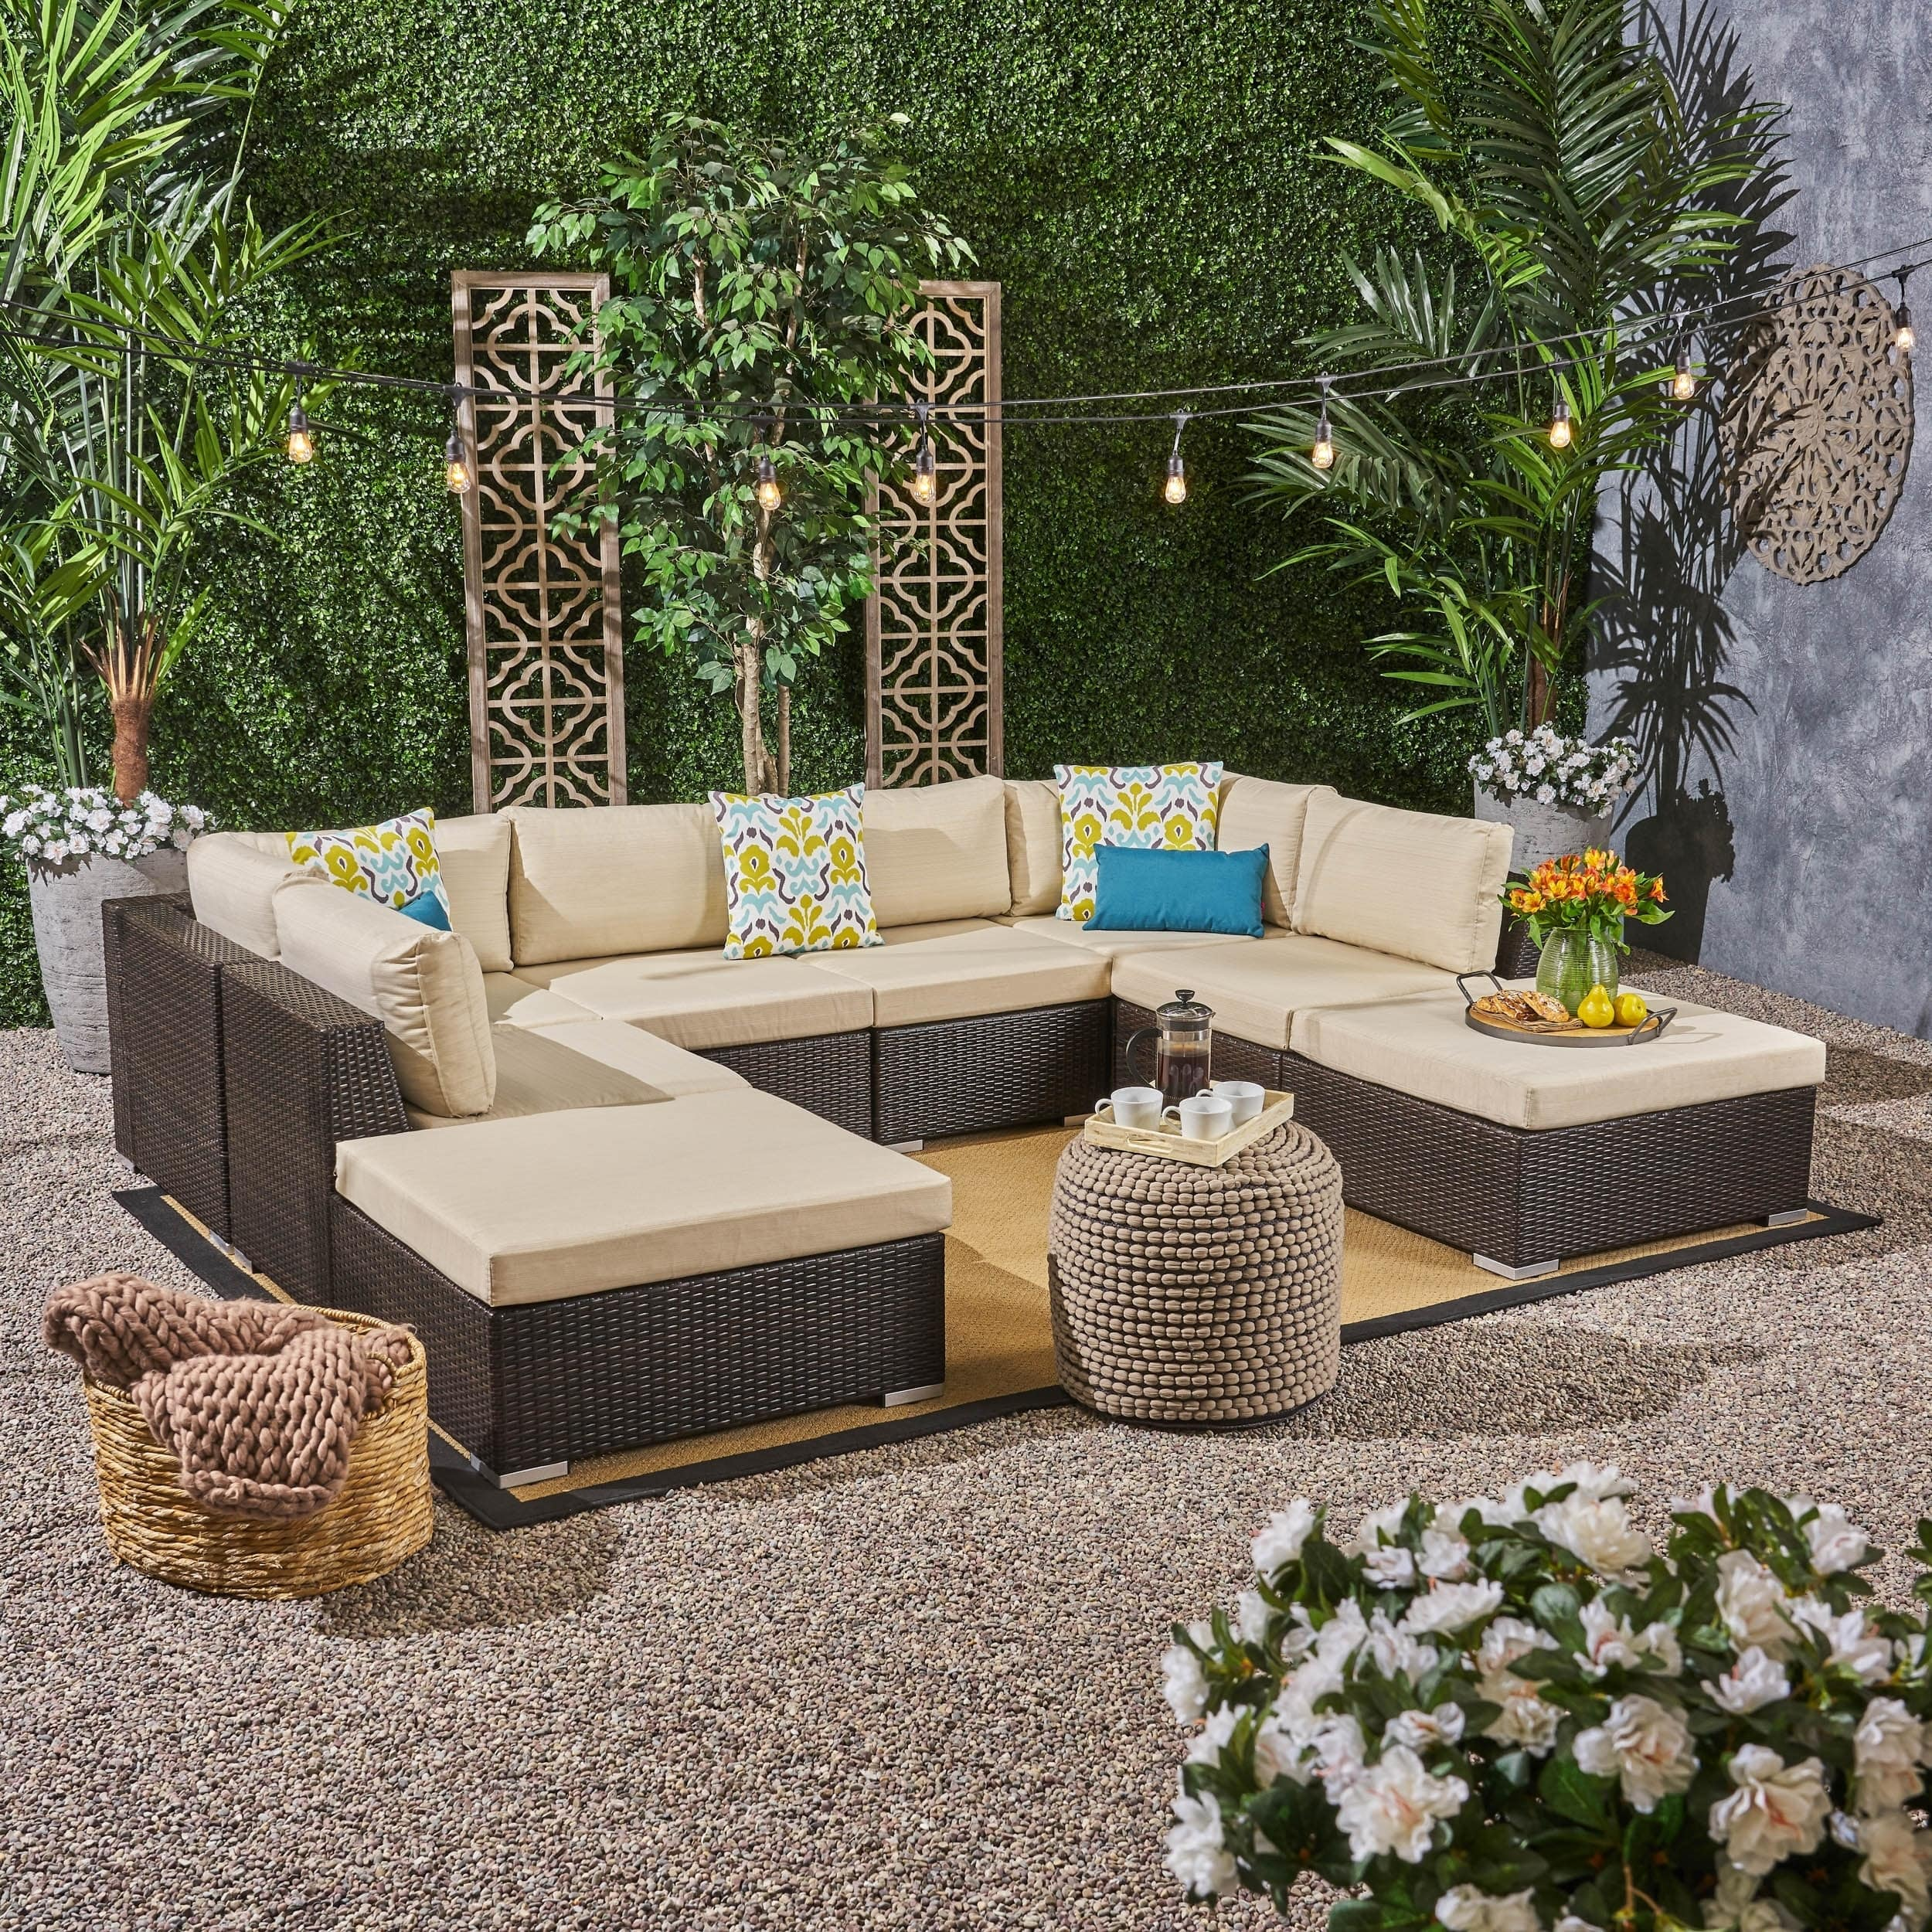 Christopher Knight Home Santa Rosa Outdoor 6 Seater Wicker Sofa Set with Aluminum Frame by